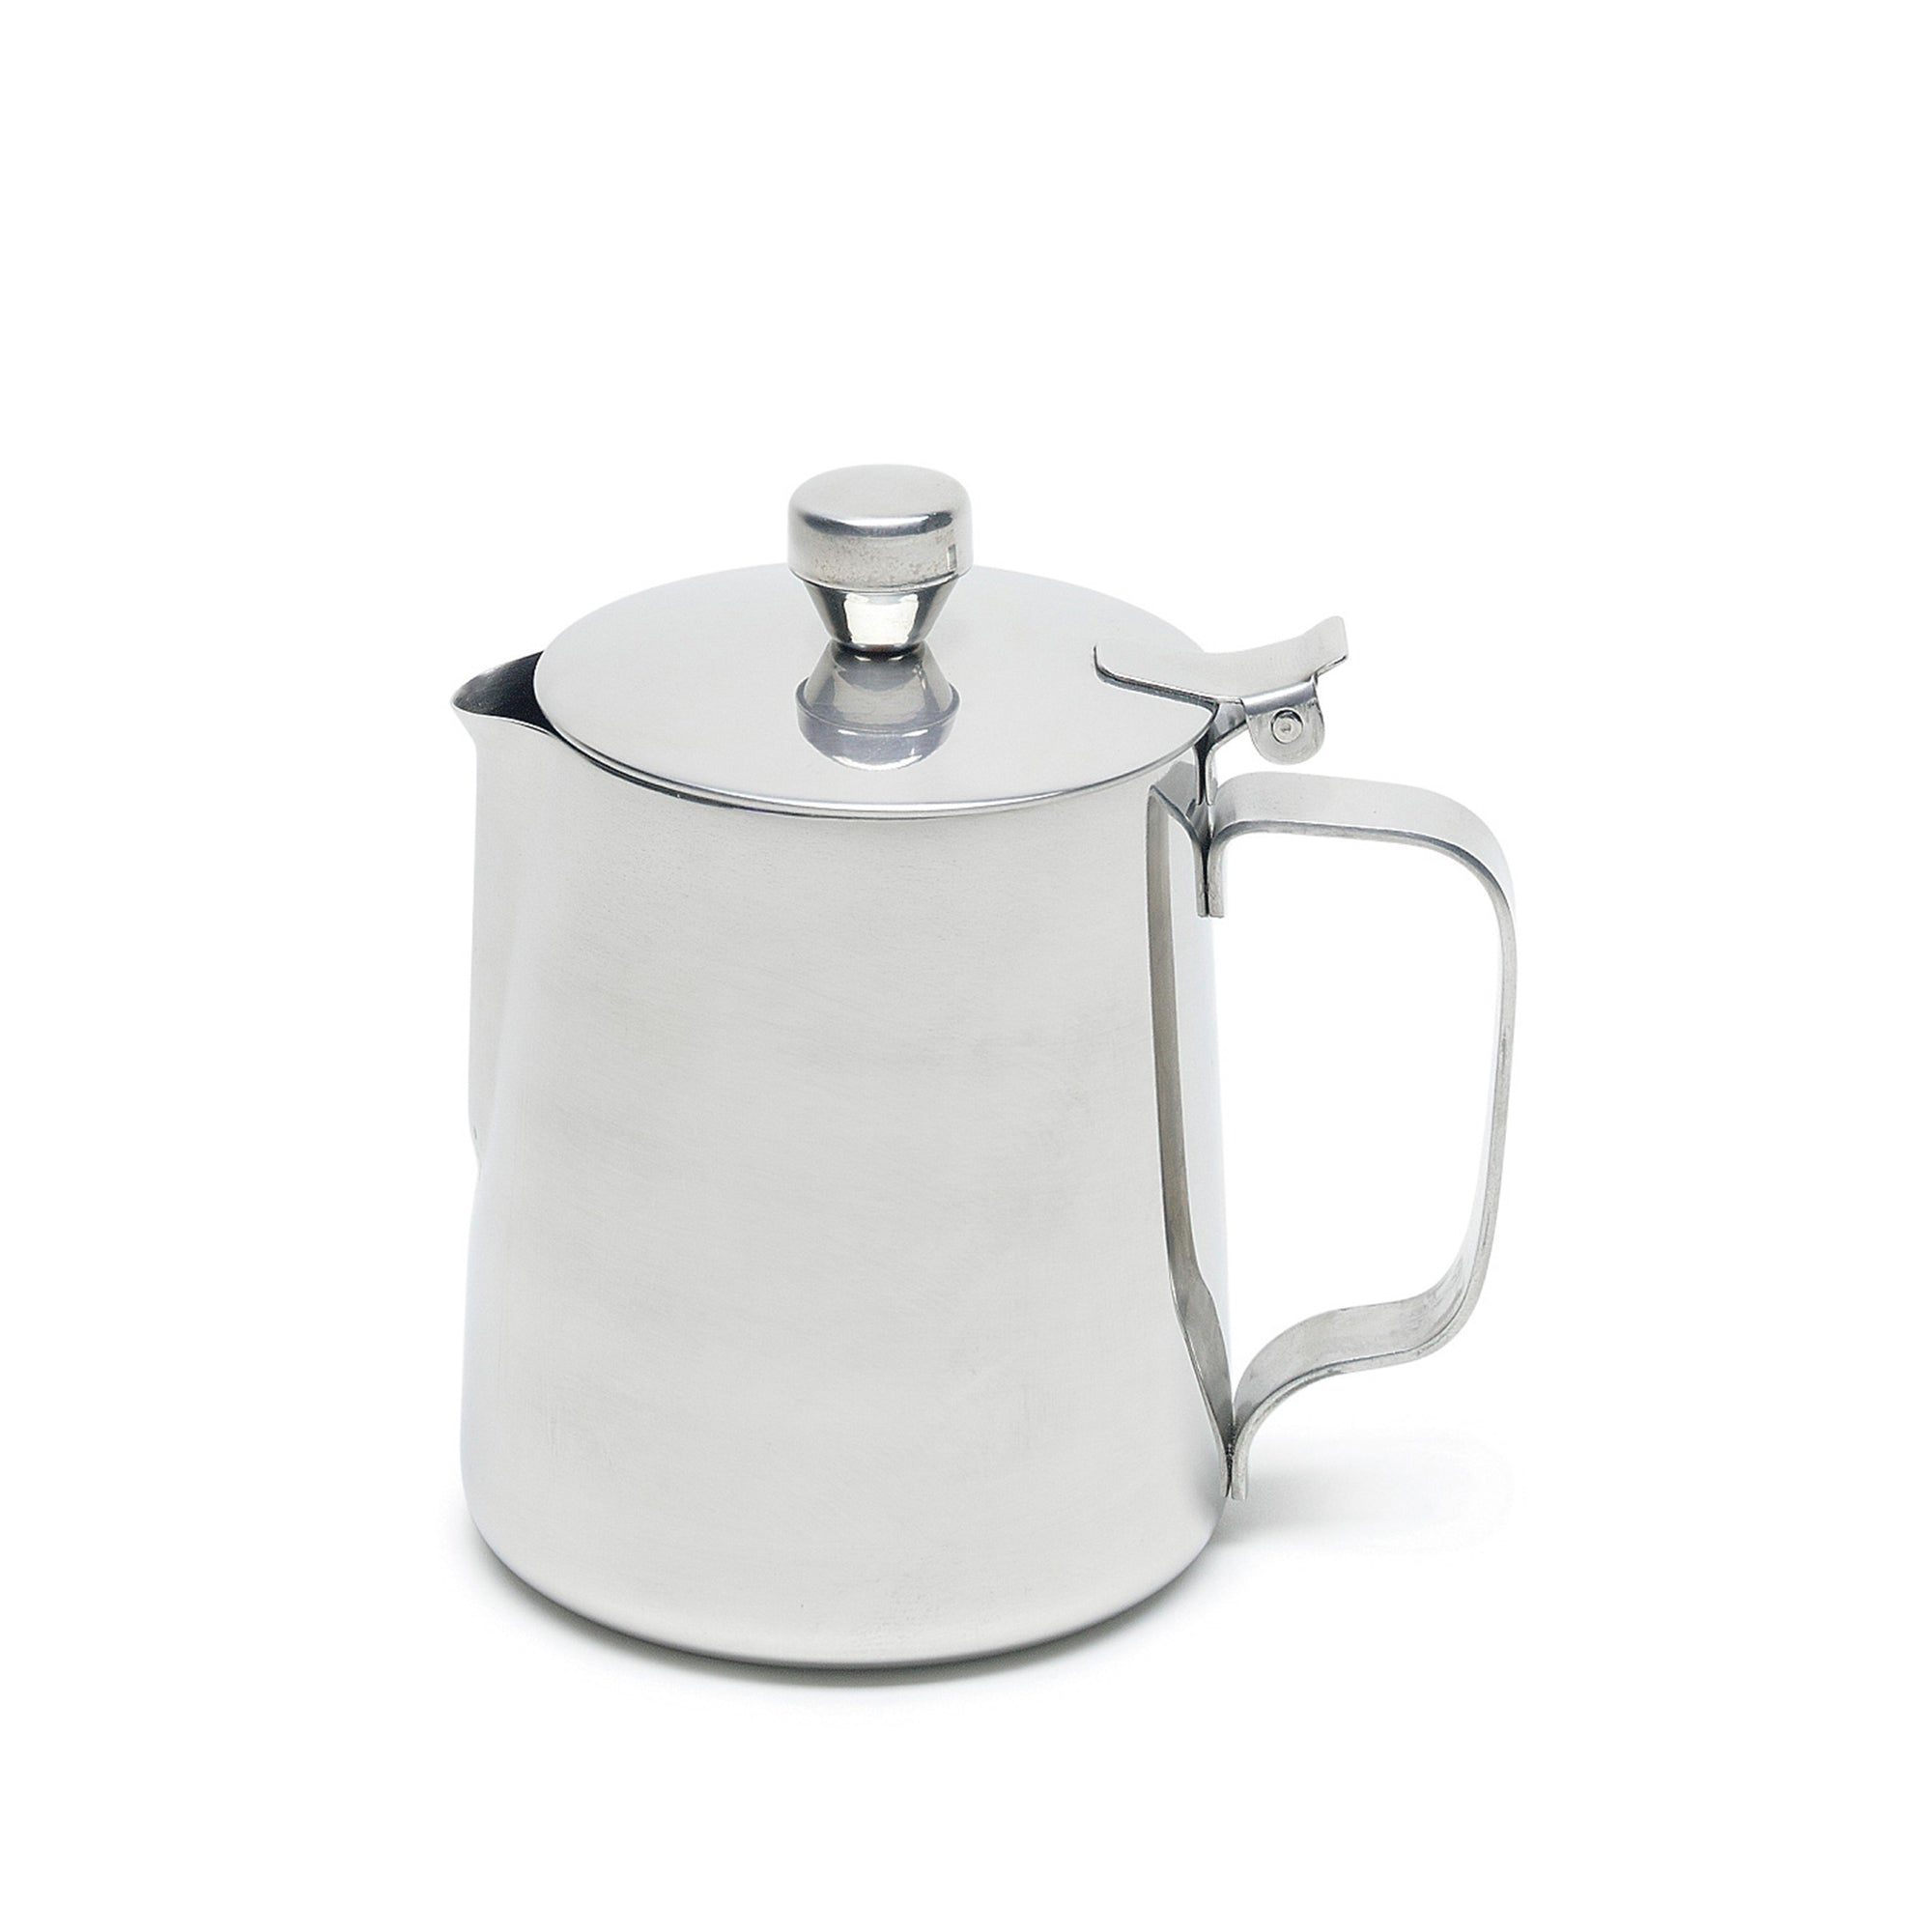 Basic Stainless Coffee Server 0,6L - Merx - Espresso Gear